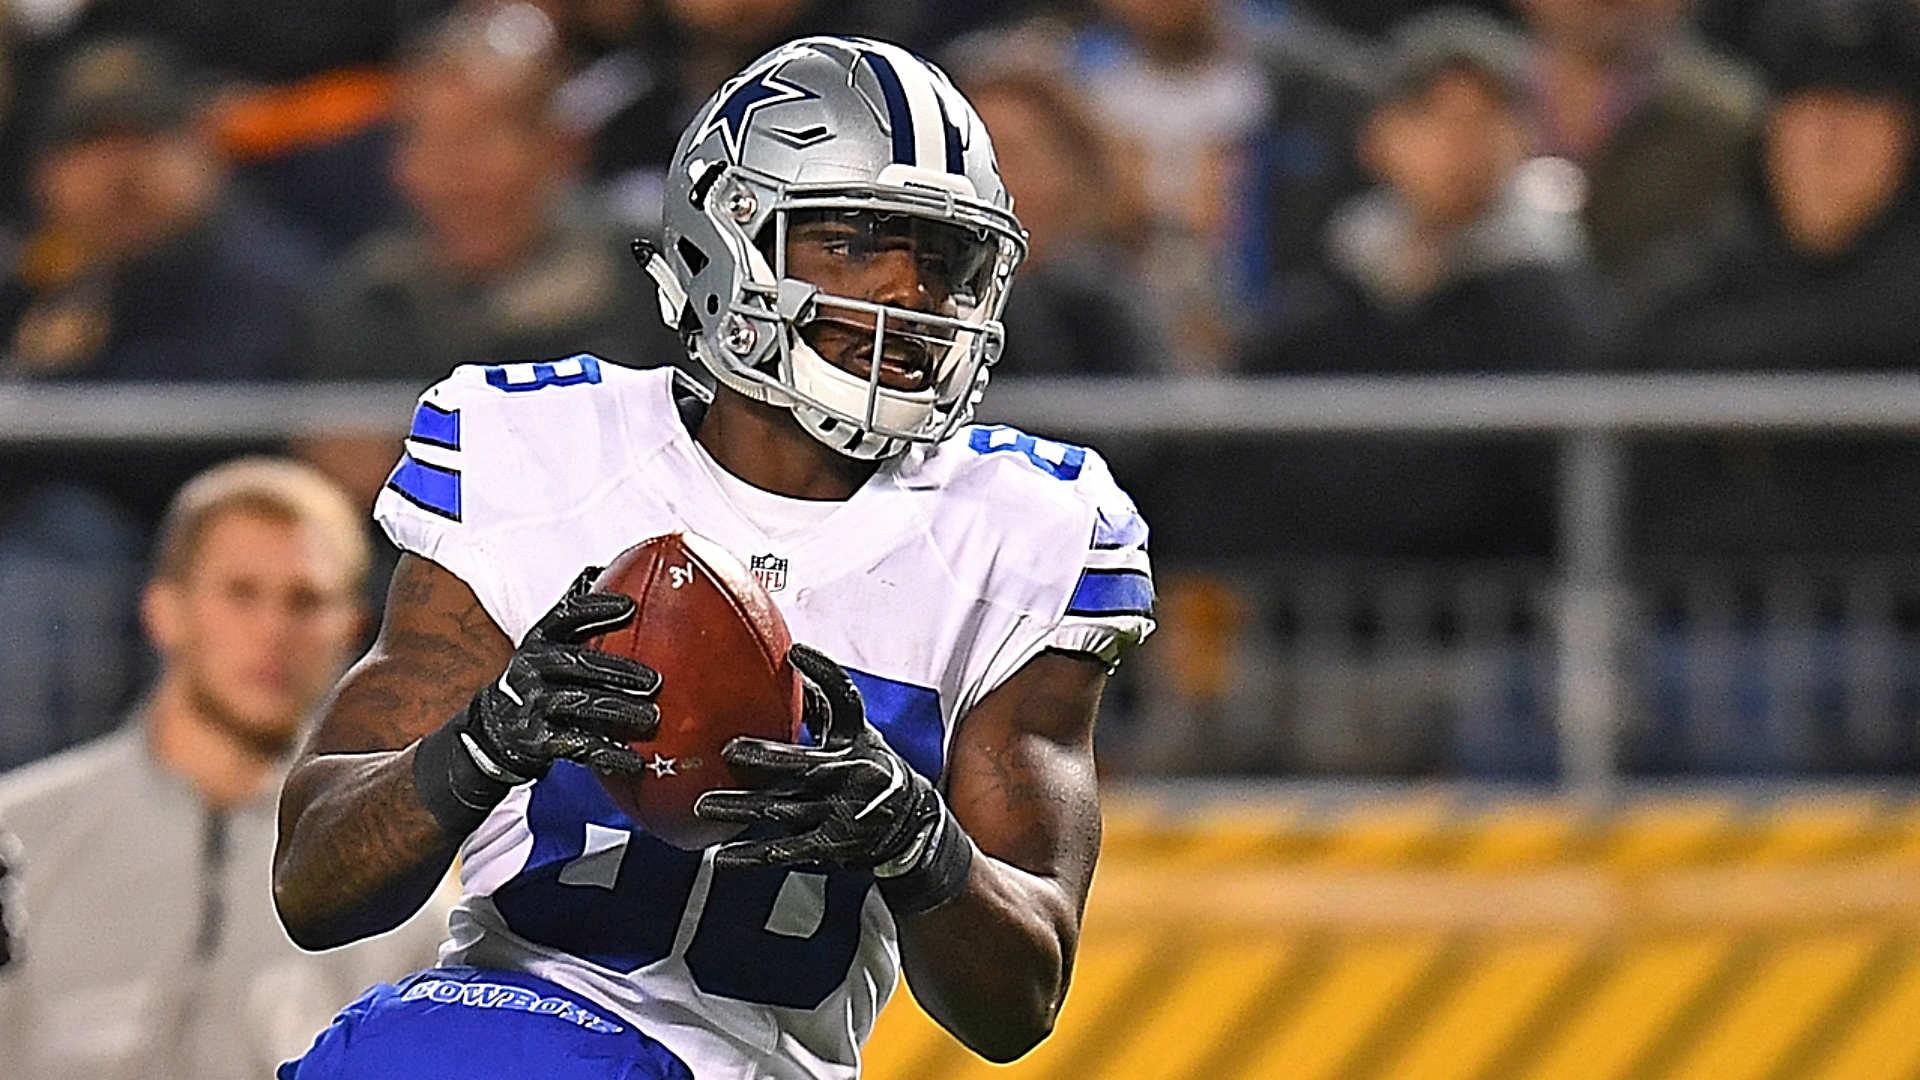 Wide receiver Dez Bryant is out for revenge after being released by the Dallas Cowboys on Friday April 13 2018 41318 and says he would welcome the